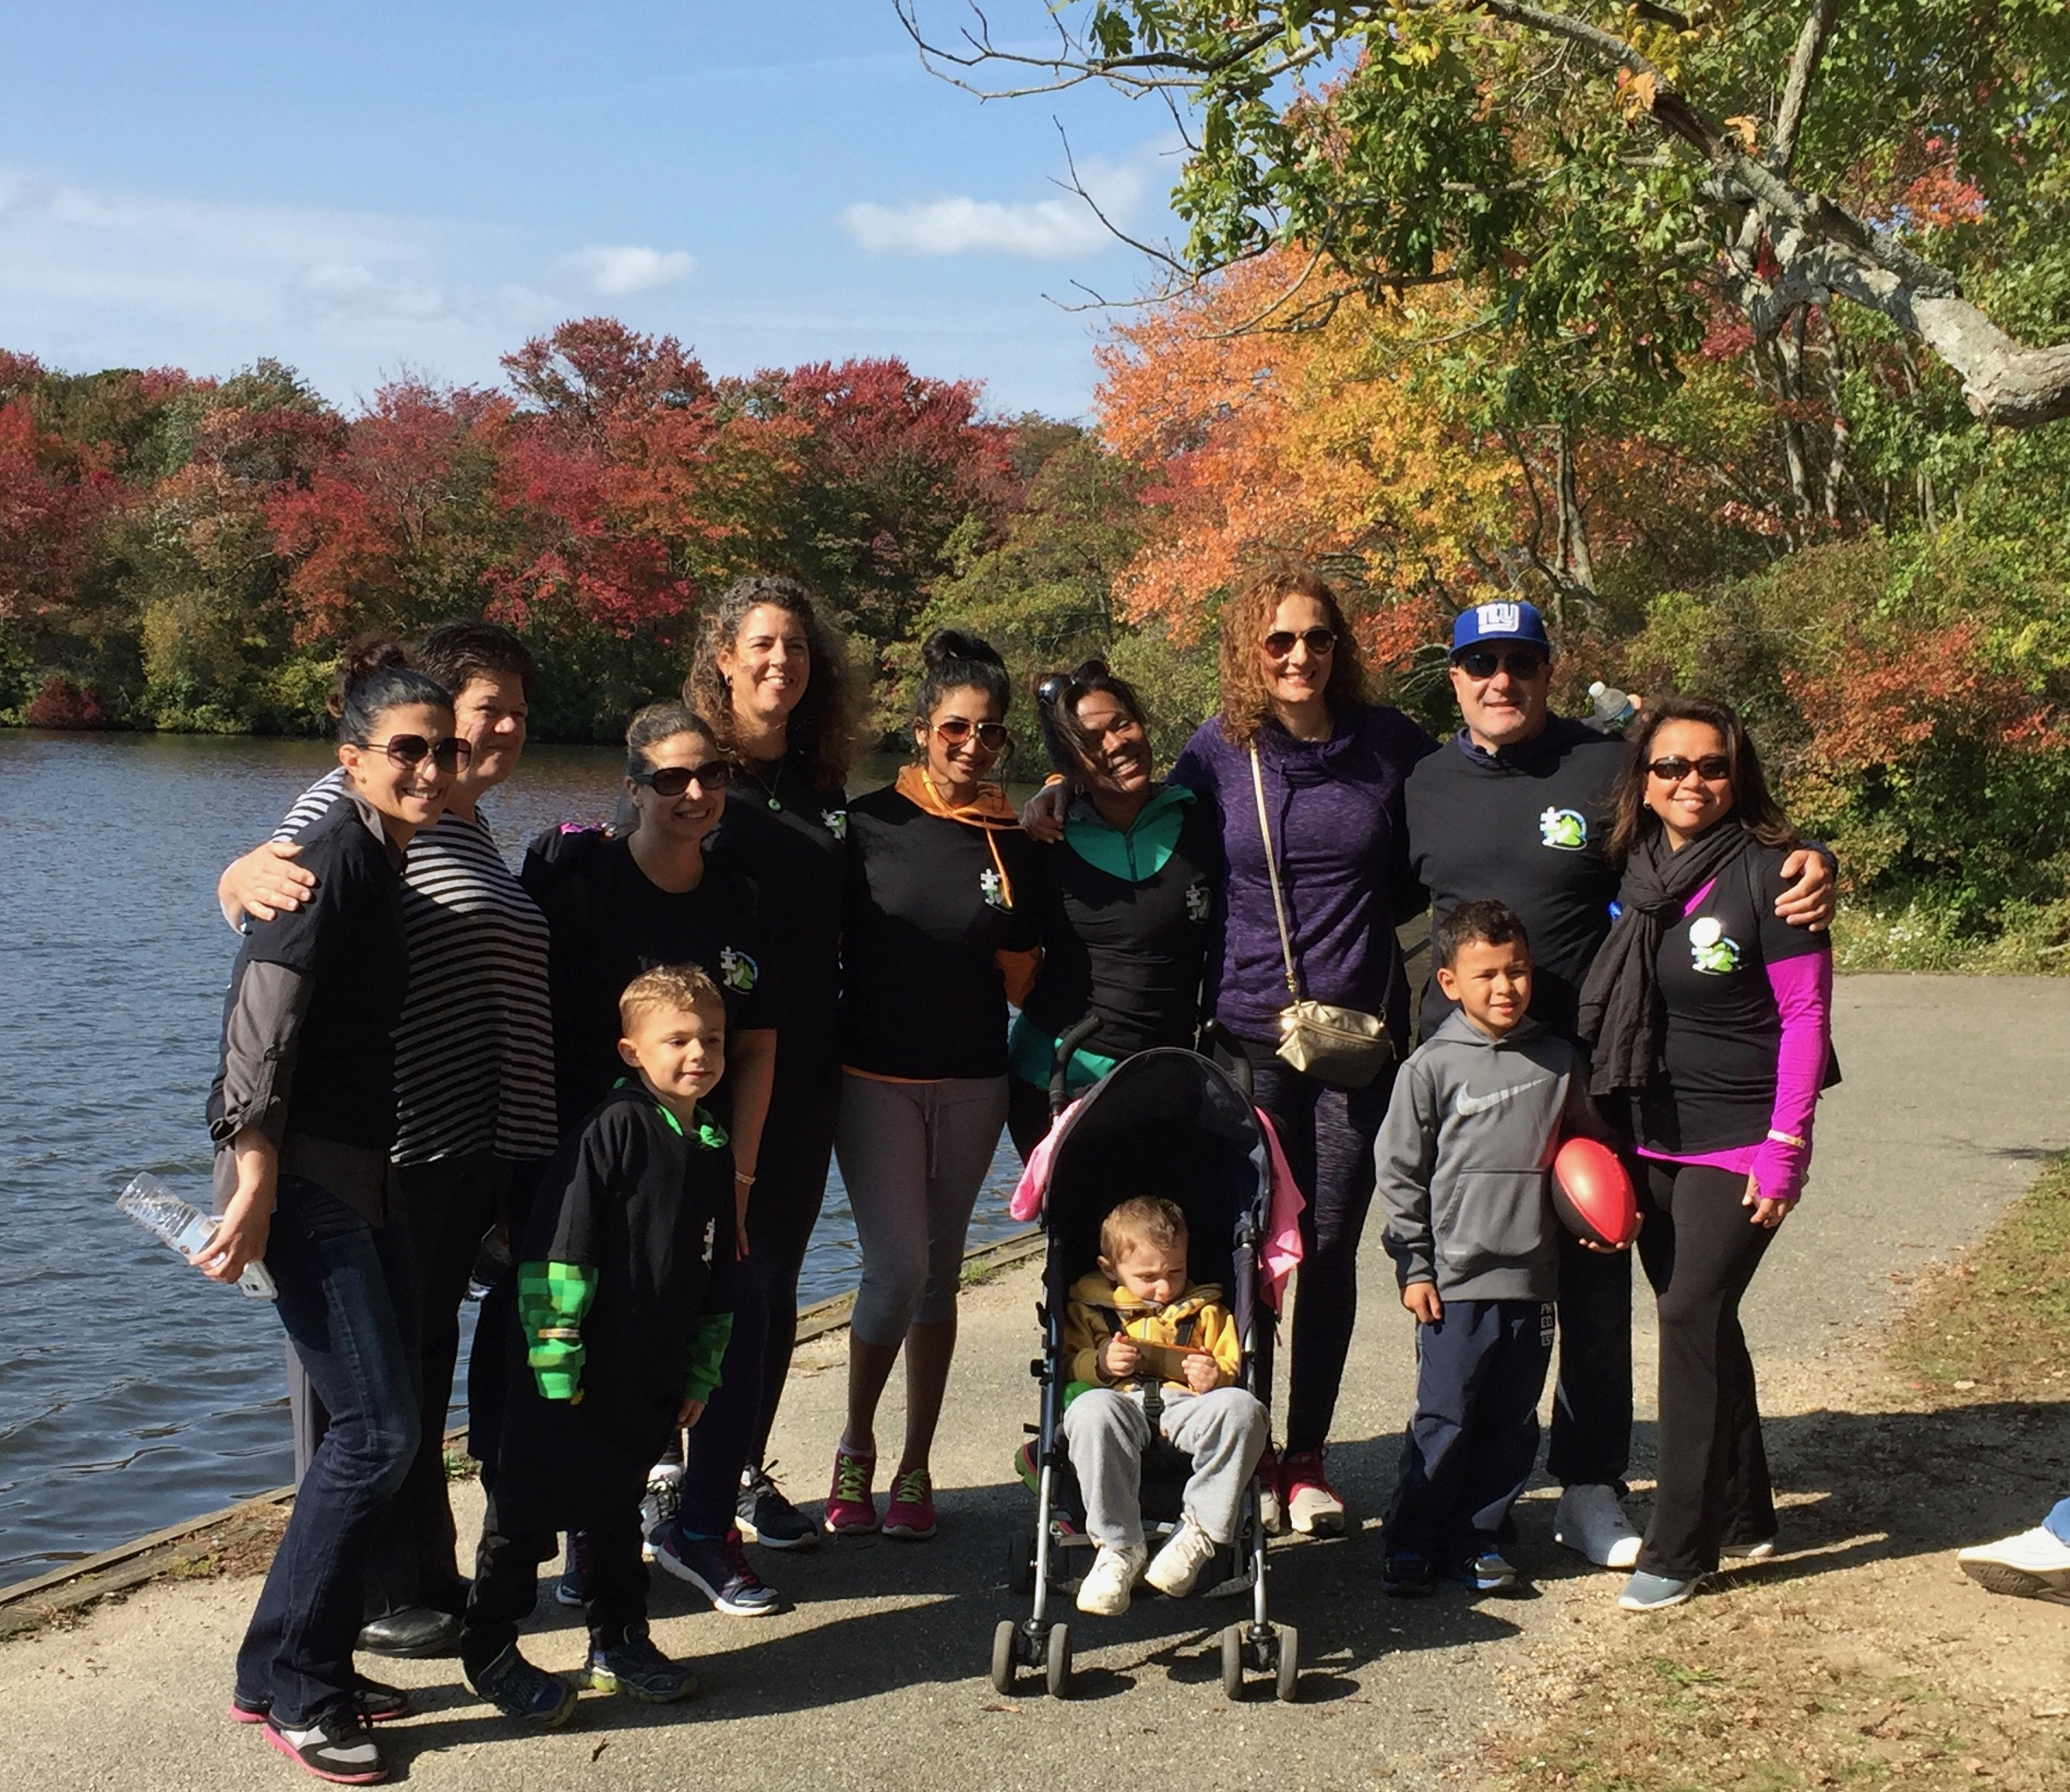 Autism Community Walk and Resource Fair Long Island 2017 Photo